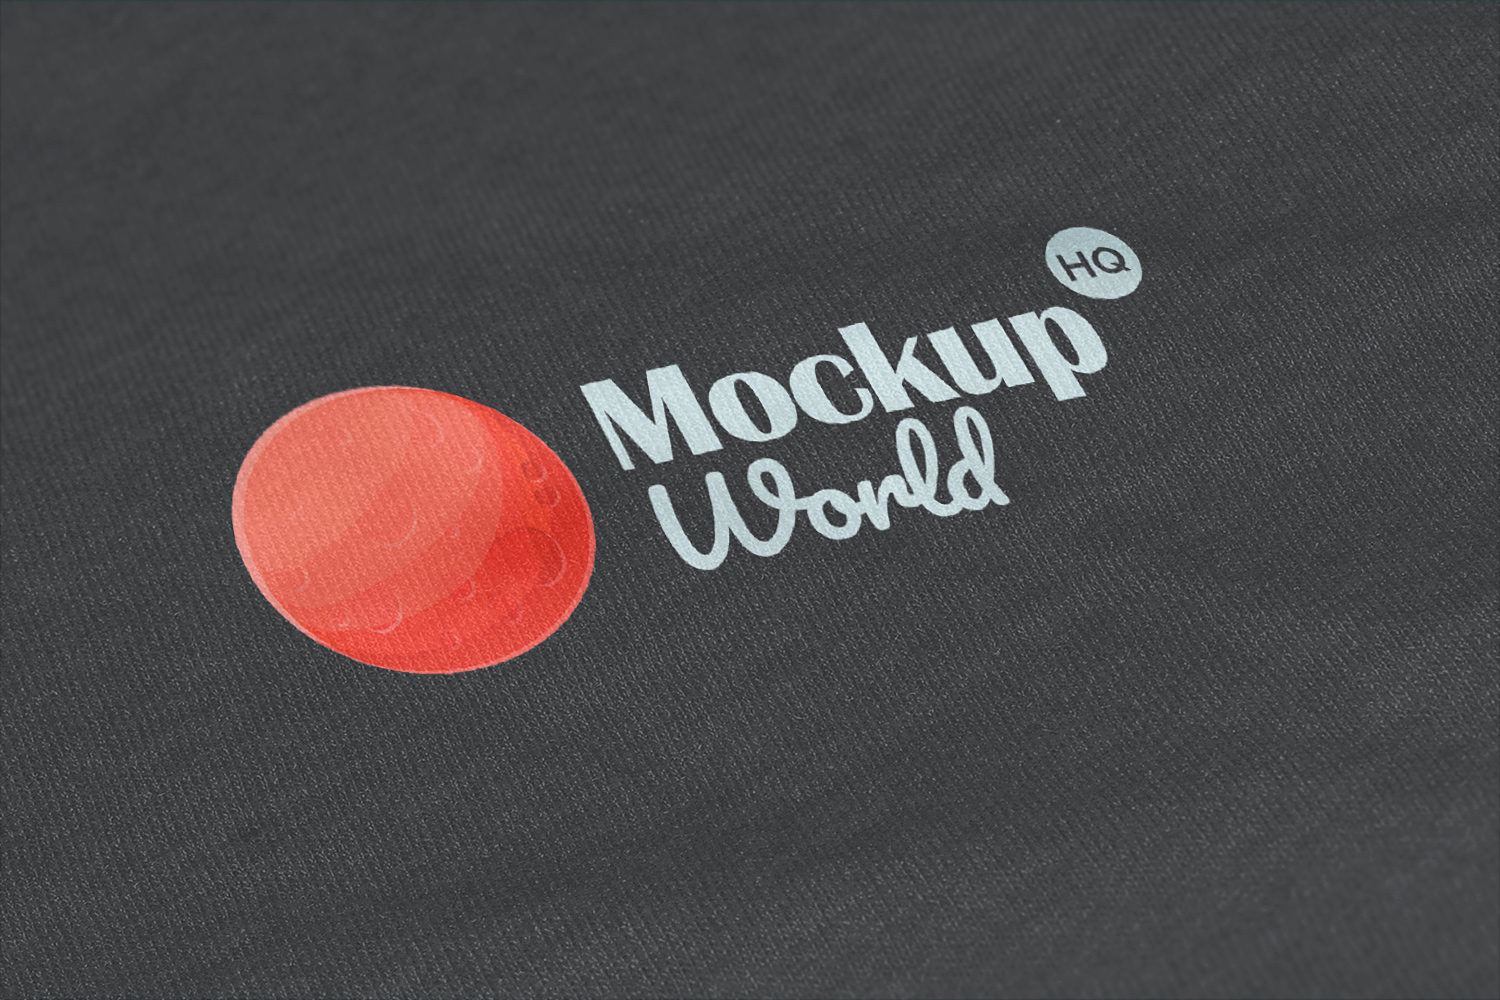 Free Logo Mockup Printed on Fabric